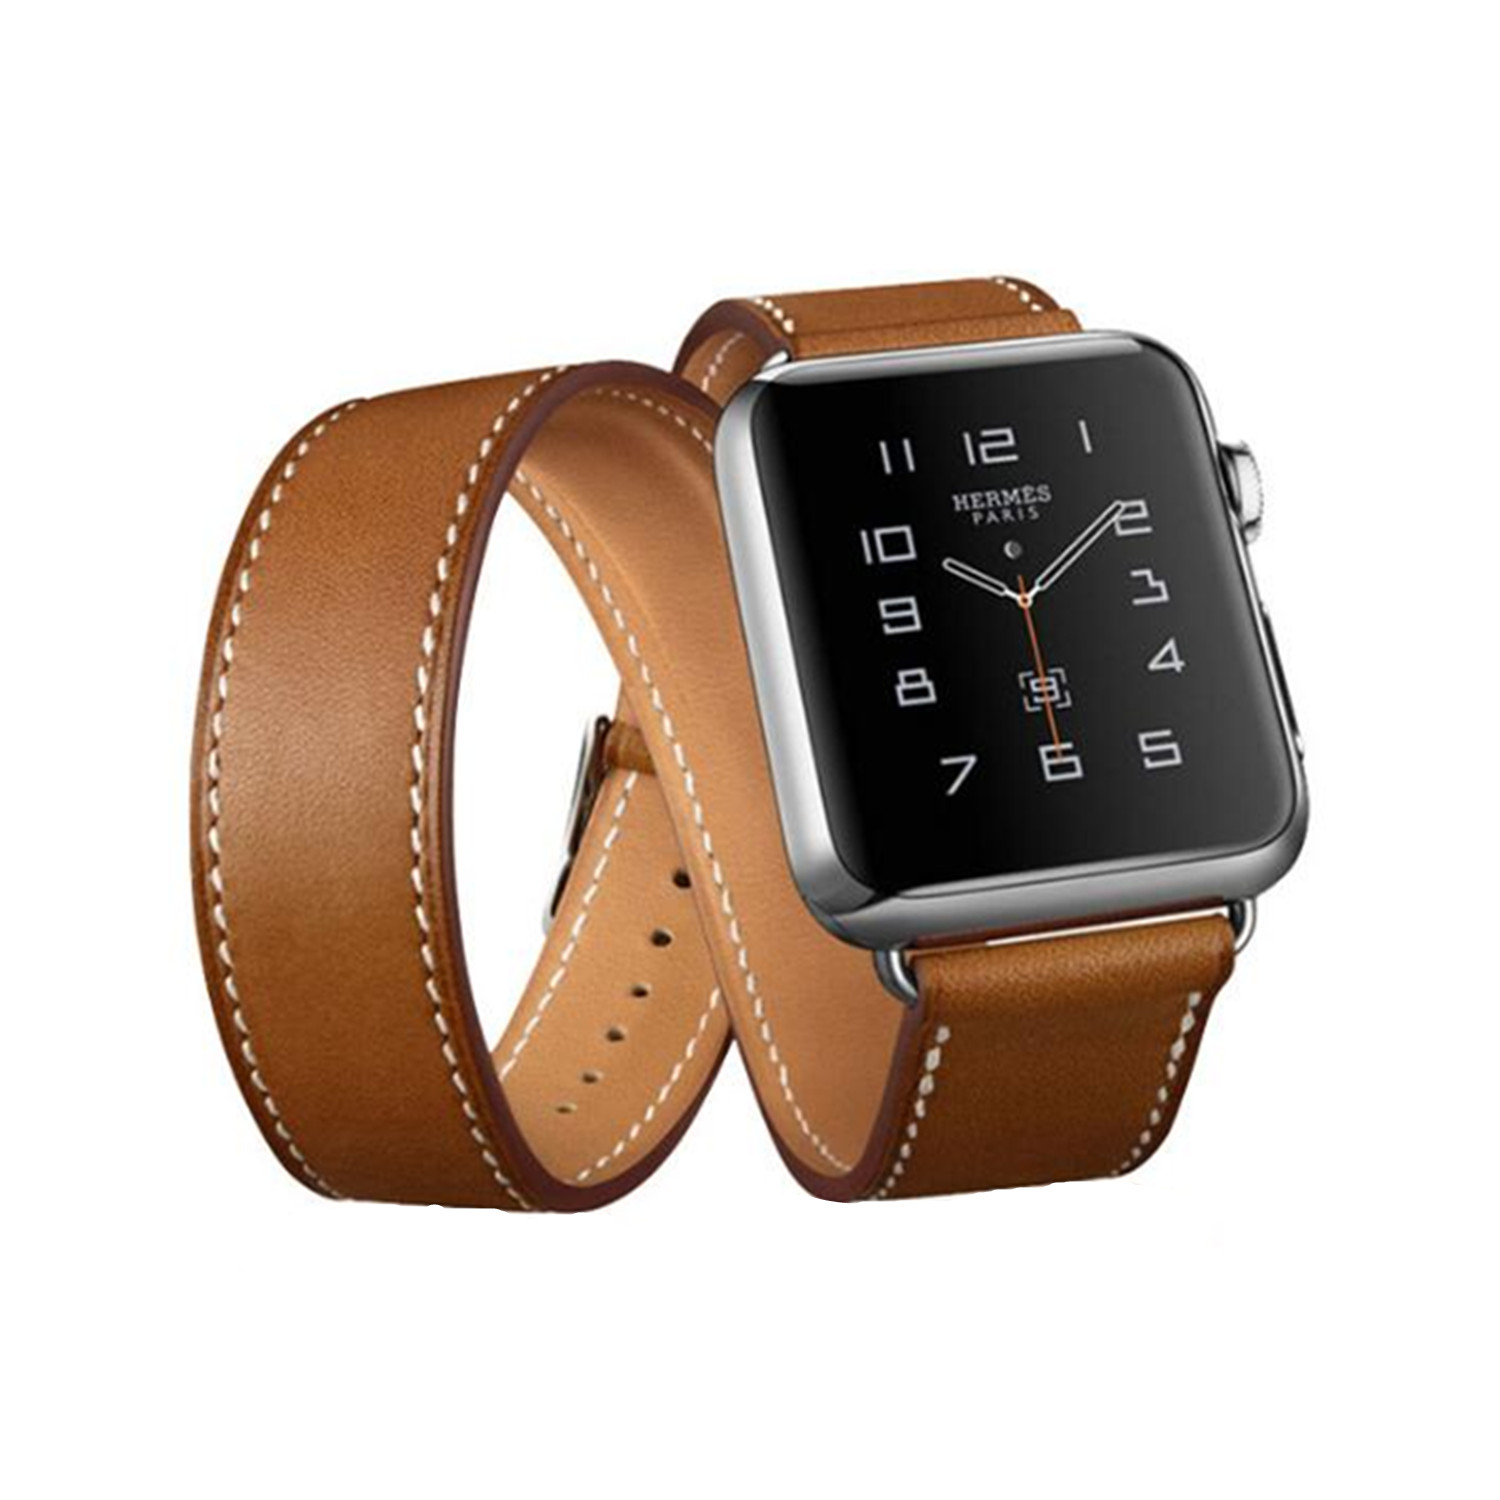 Genuine Leather watchband watch band strap for hermes apple watch 42mm/38mm bracelet clasp buckle leather strap watch men brown